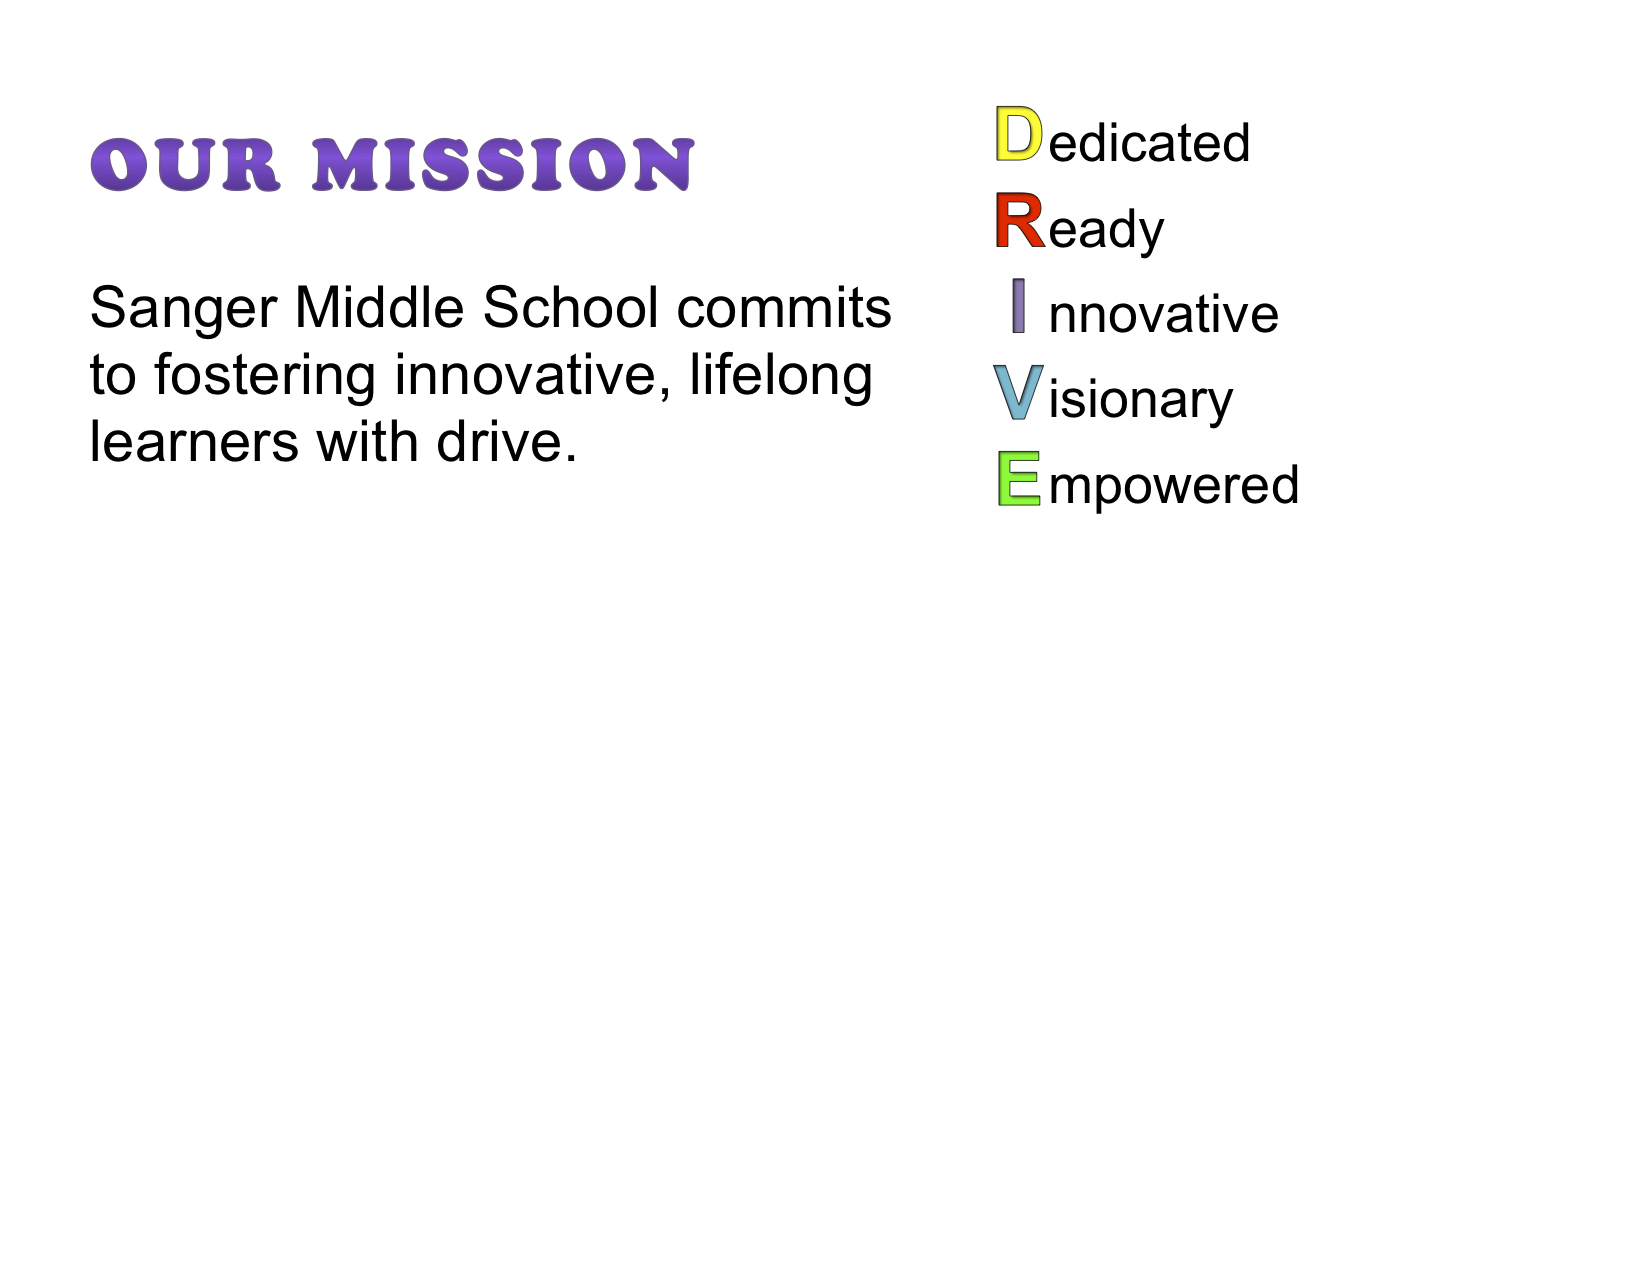 Sanger Middle School commits to fostering innovative, lifelong learners with drive